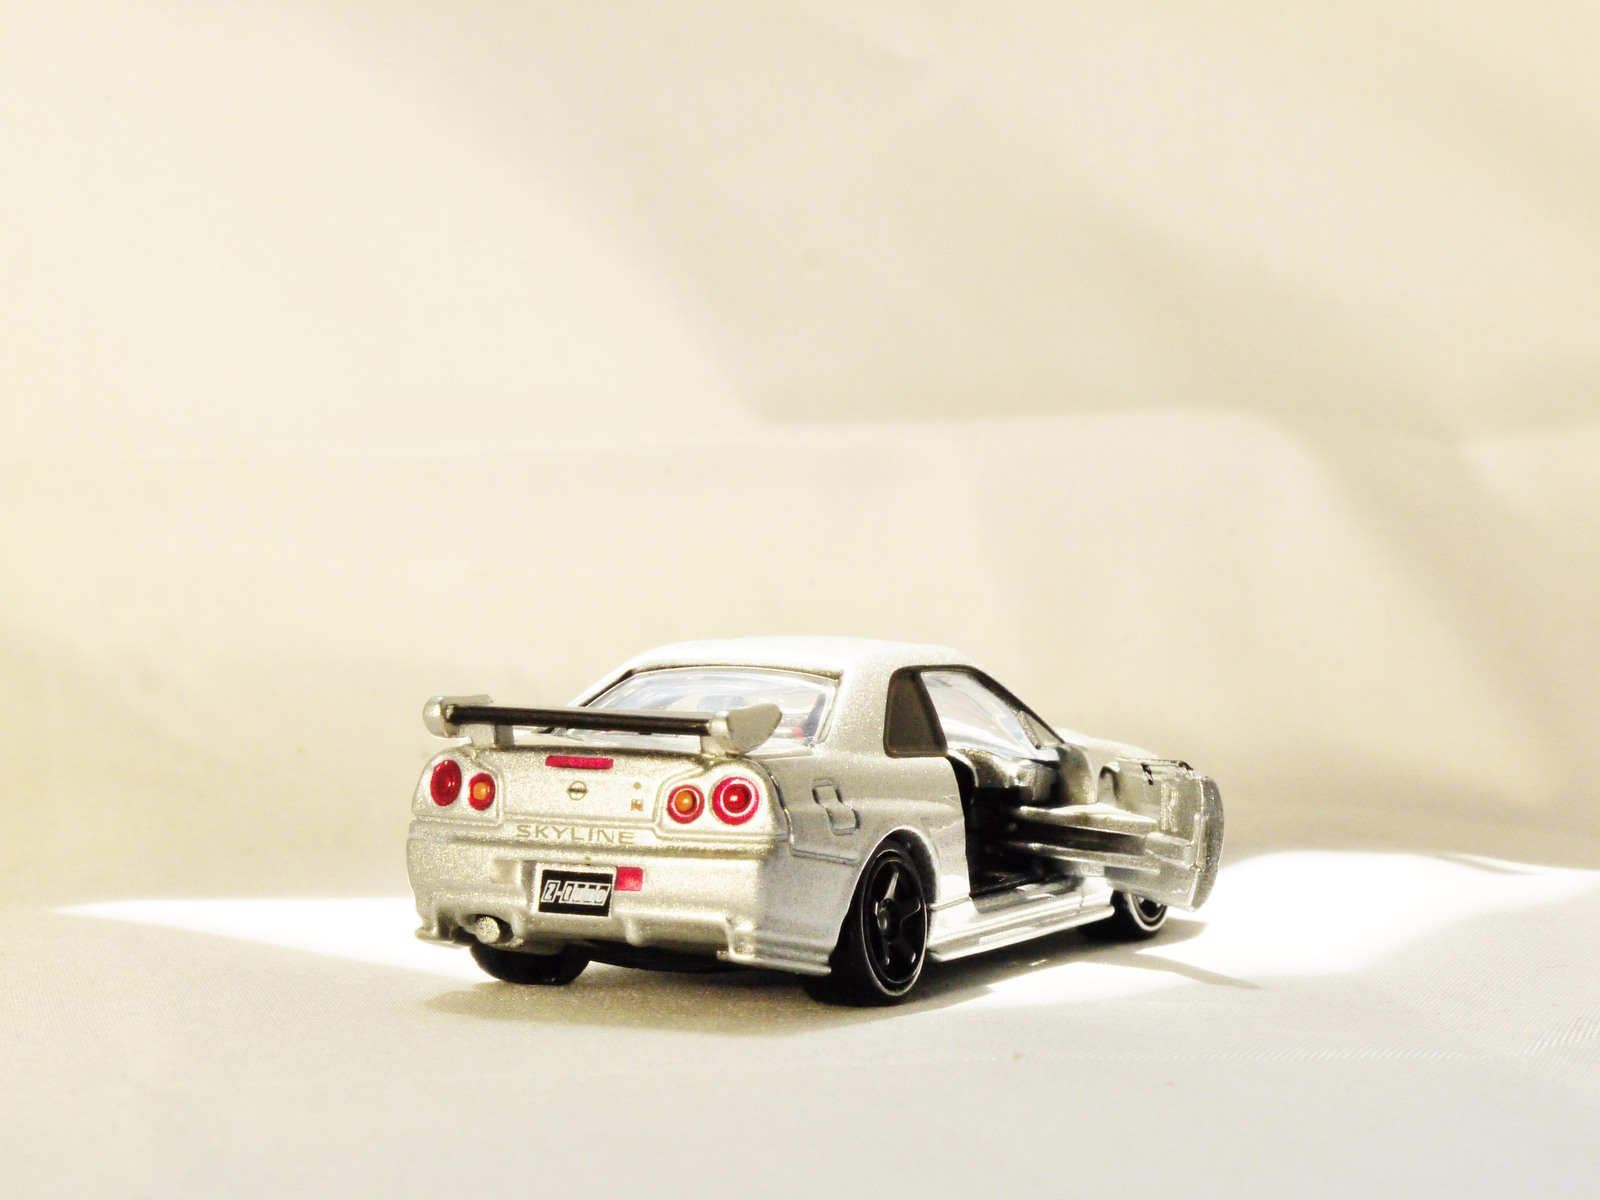 Takara Tomy Tomica Premium 01 Nissan Nismo And 50 Similar Items Diecast Truck No77 Hino Profia Original R34 Gt R Z Tune Vehicle